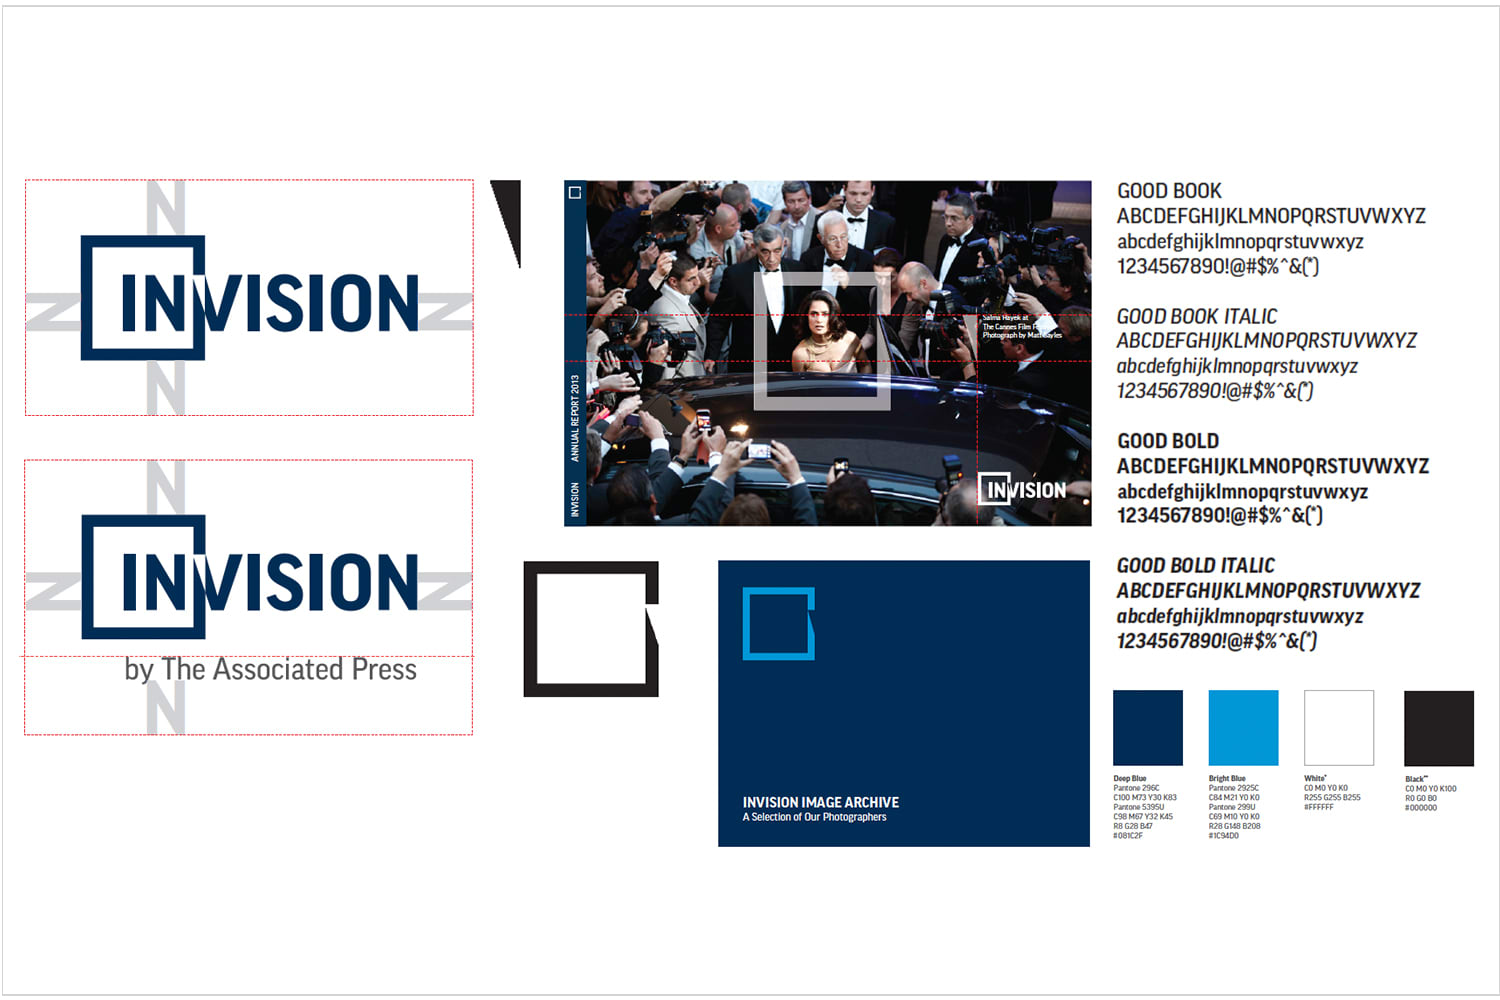 Brand Identity System for The Associated Press